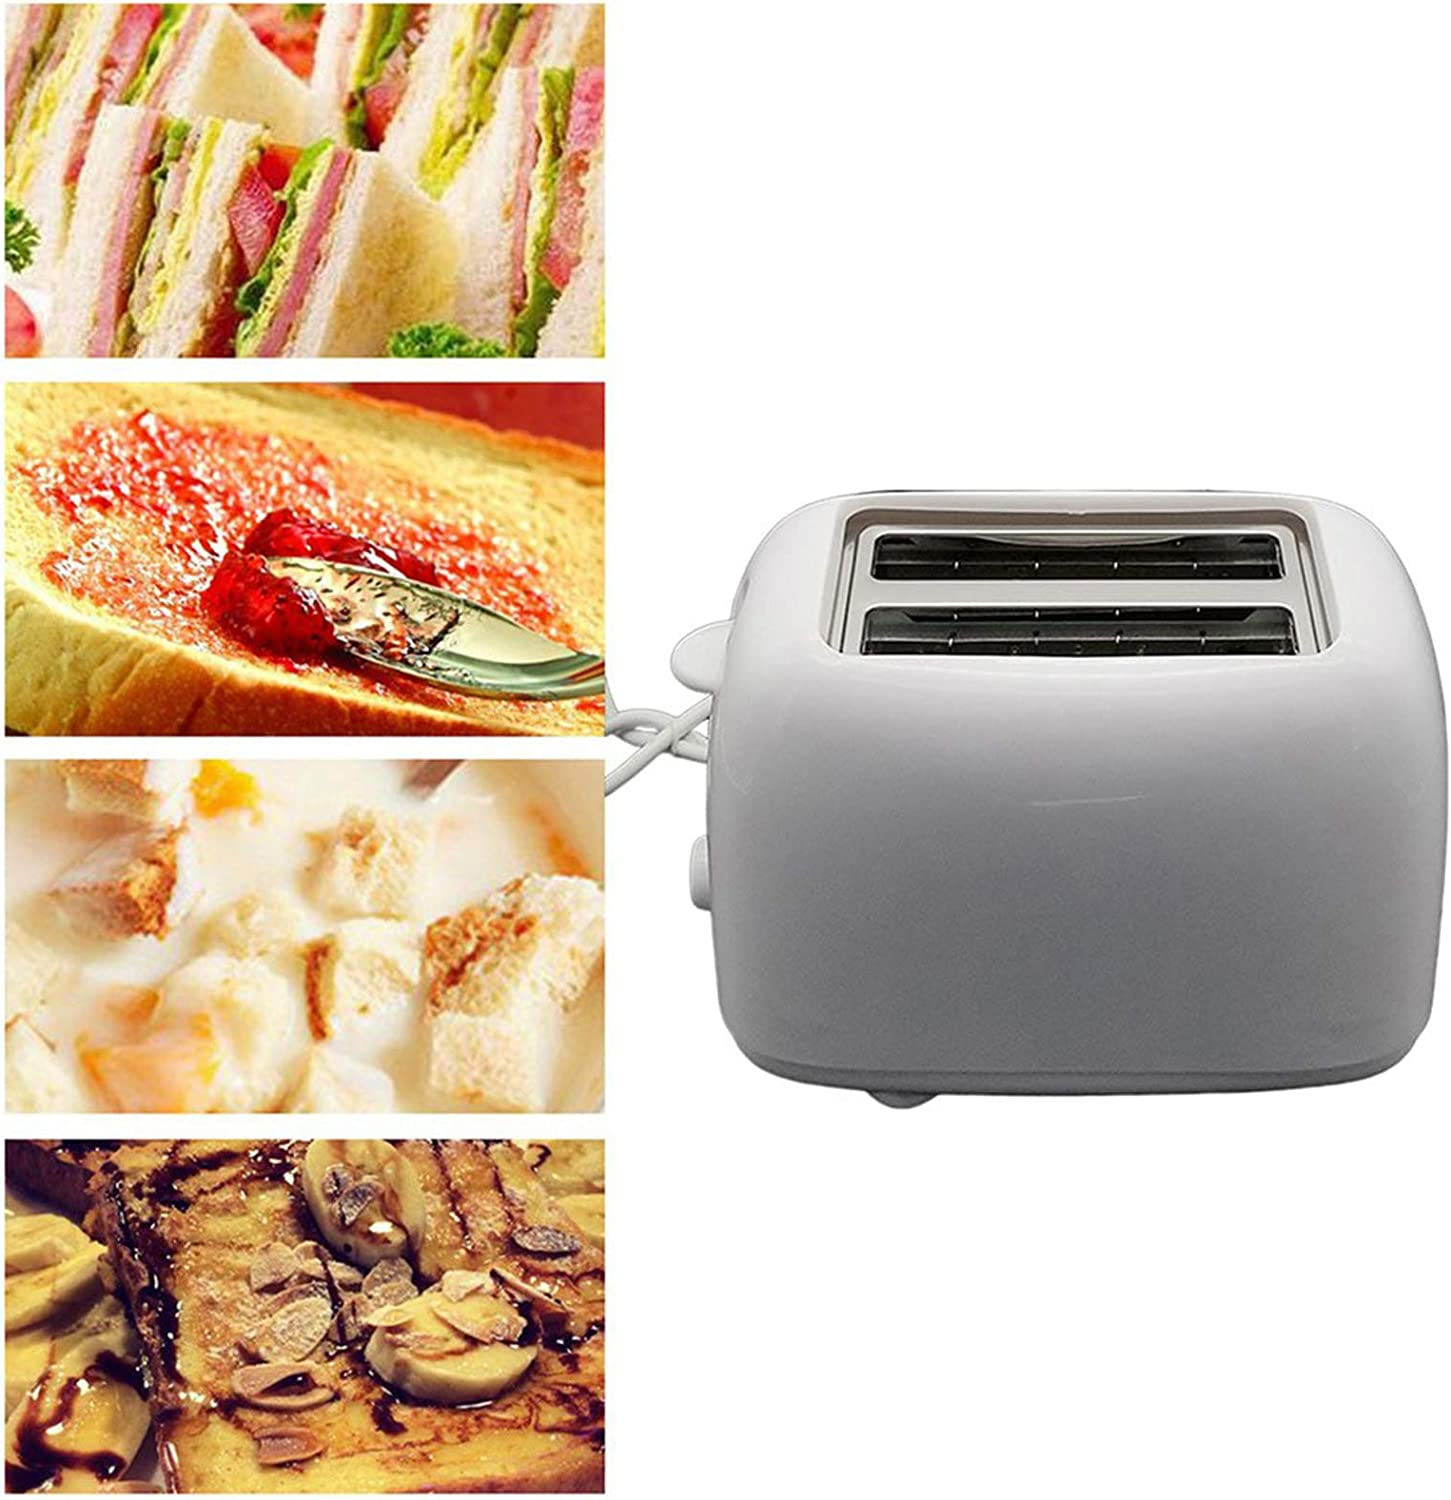 2-Slice Toaster with Adjustable Browning Control, 7 Toasting Functions for Household Automatic Breakfast Machine